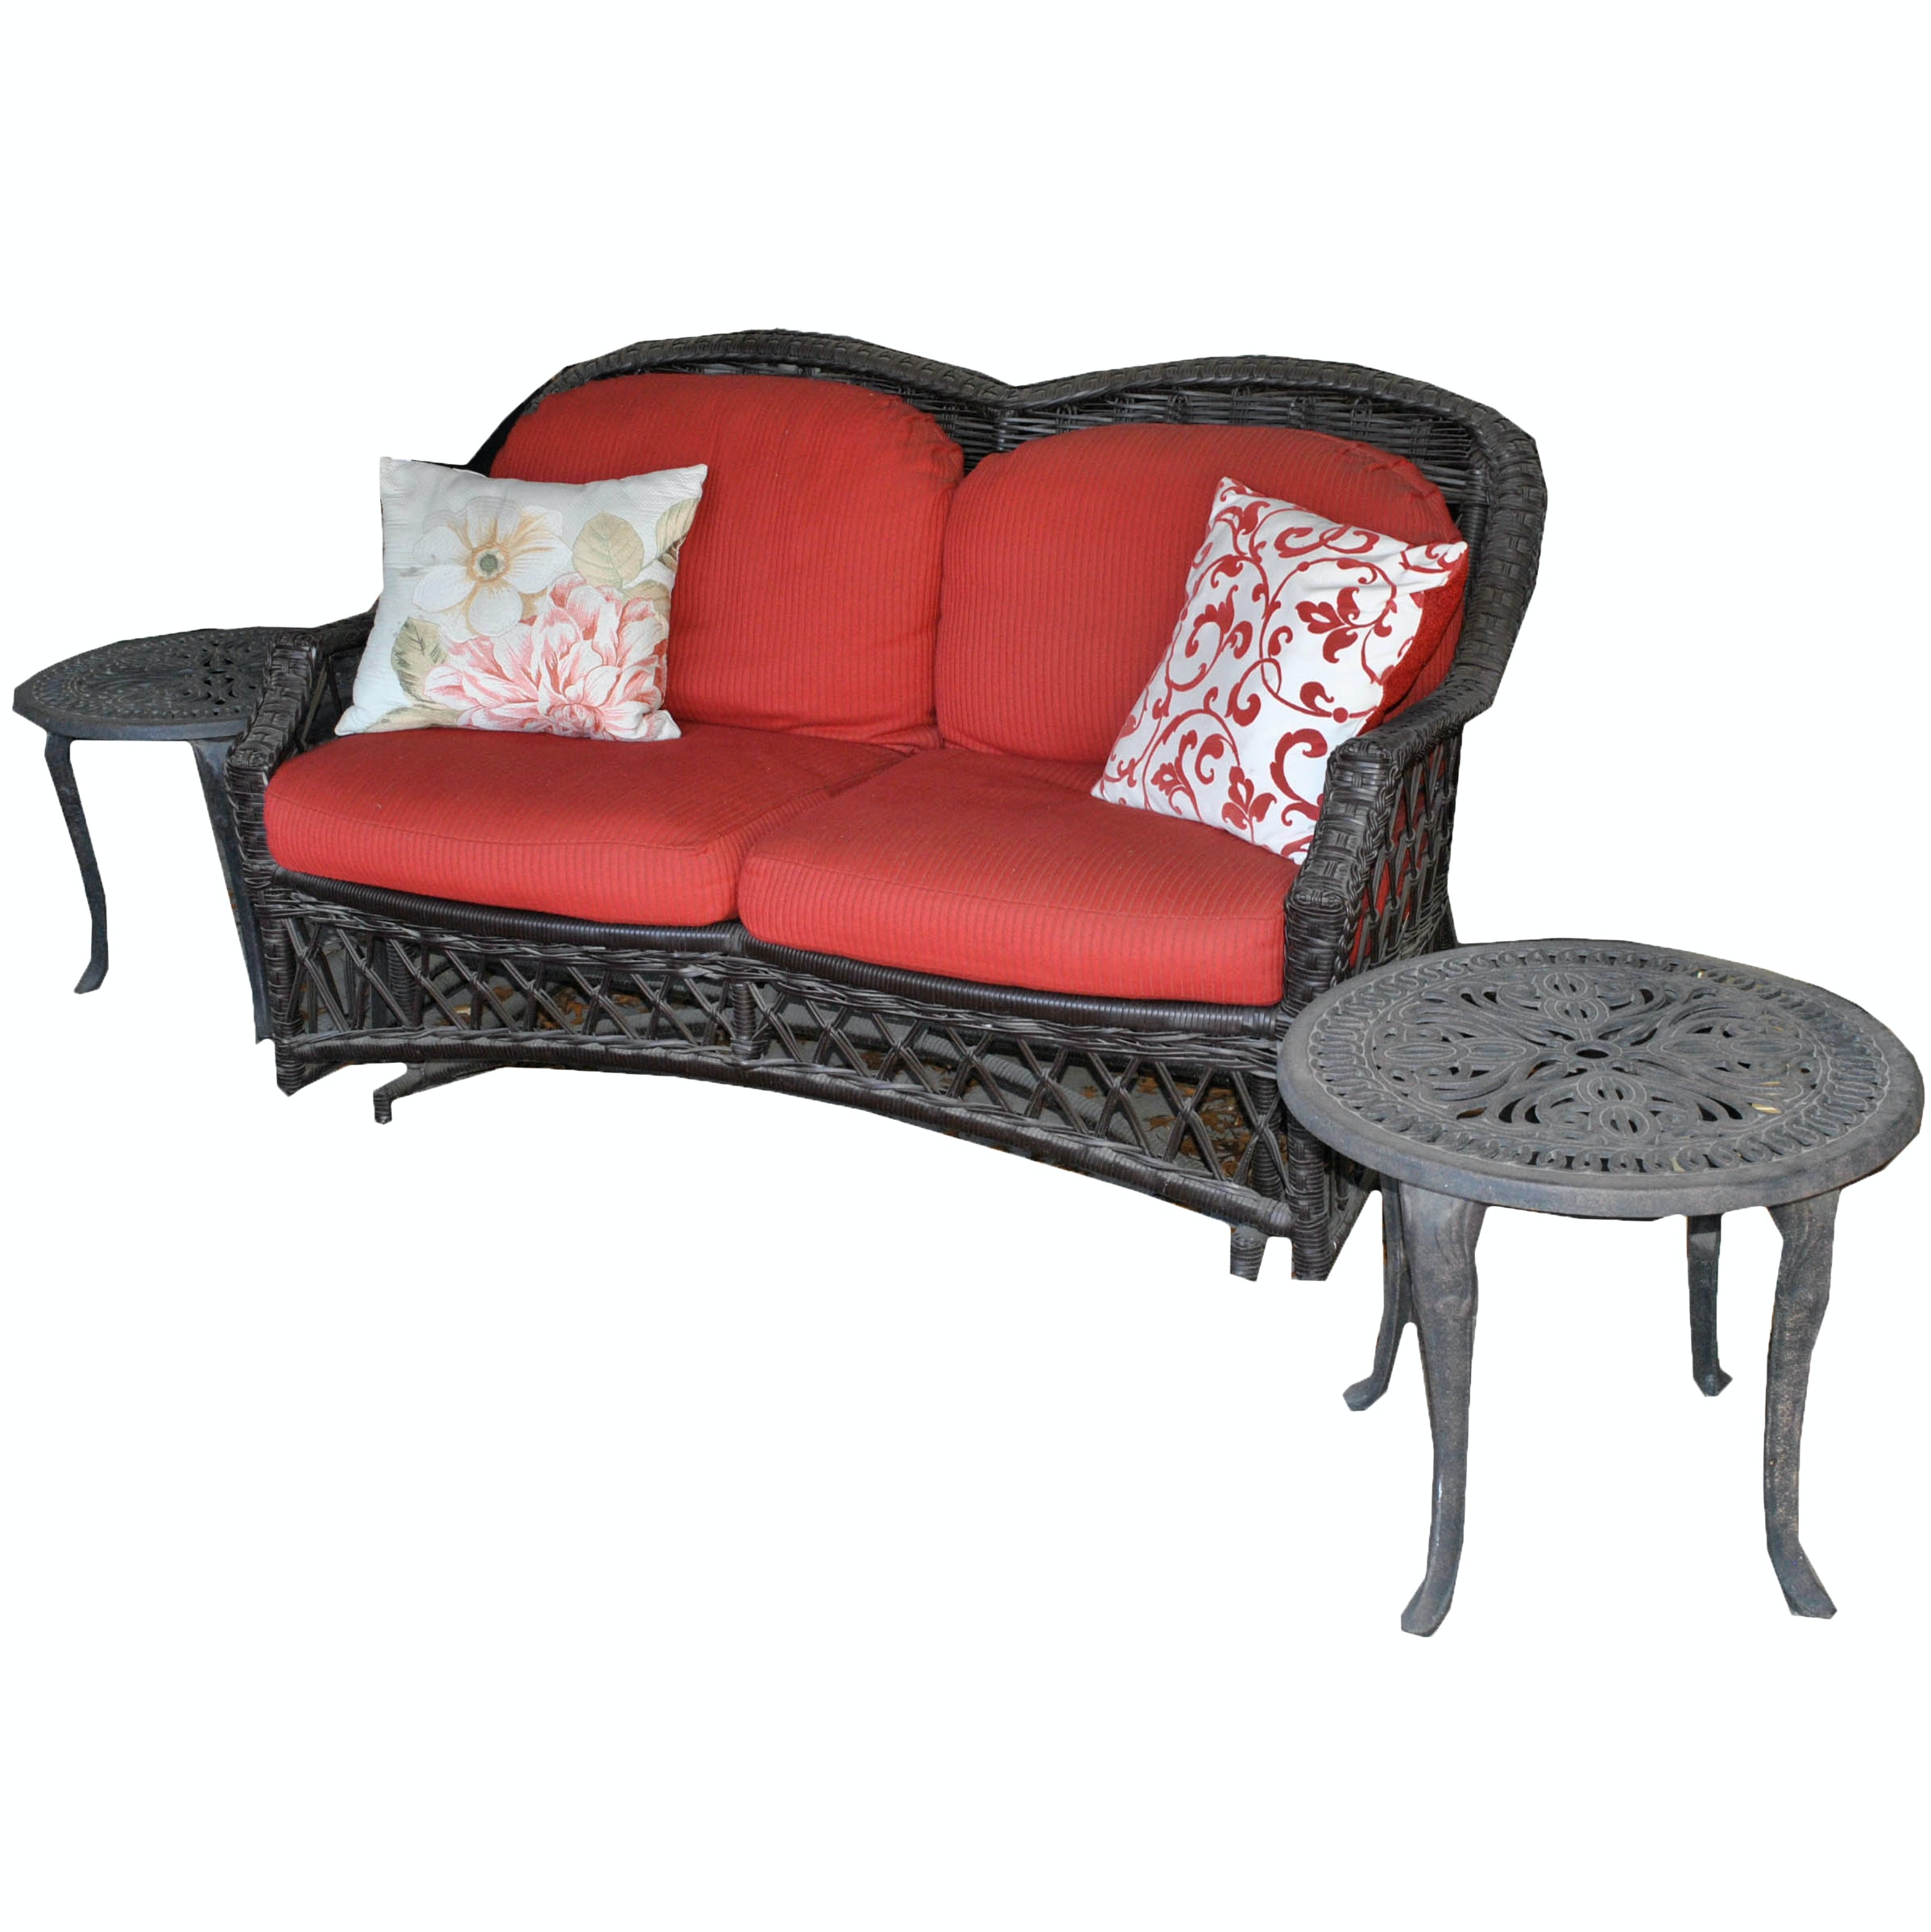 Wicker Glider Loveseat with End Tables